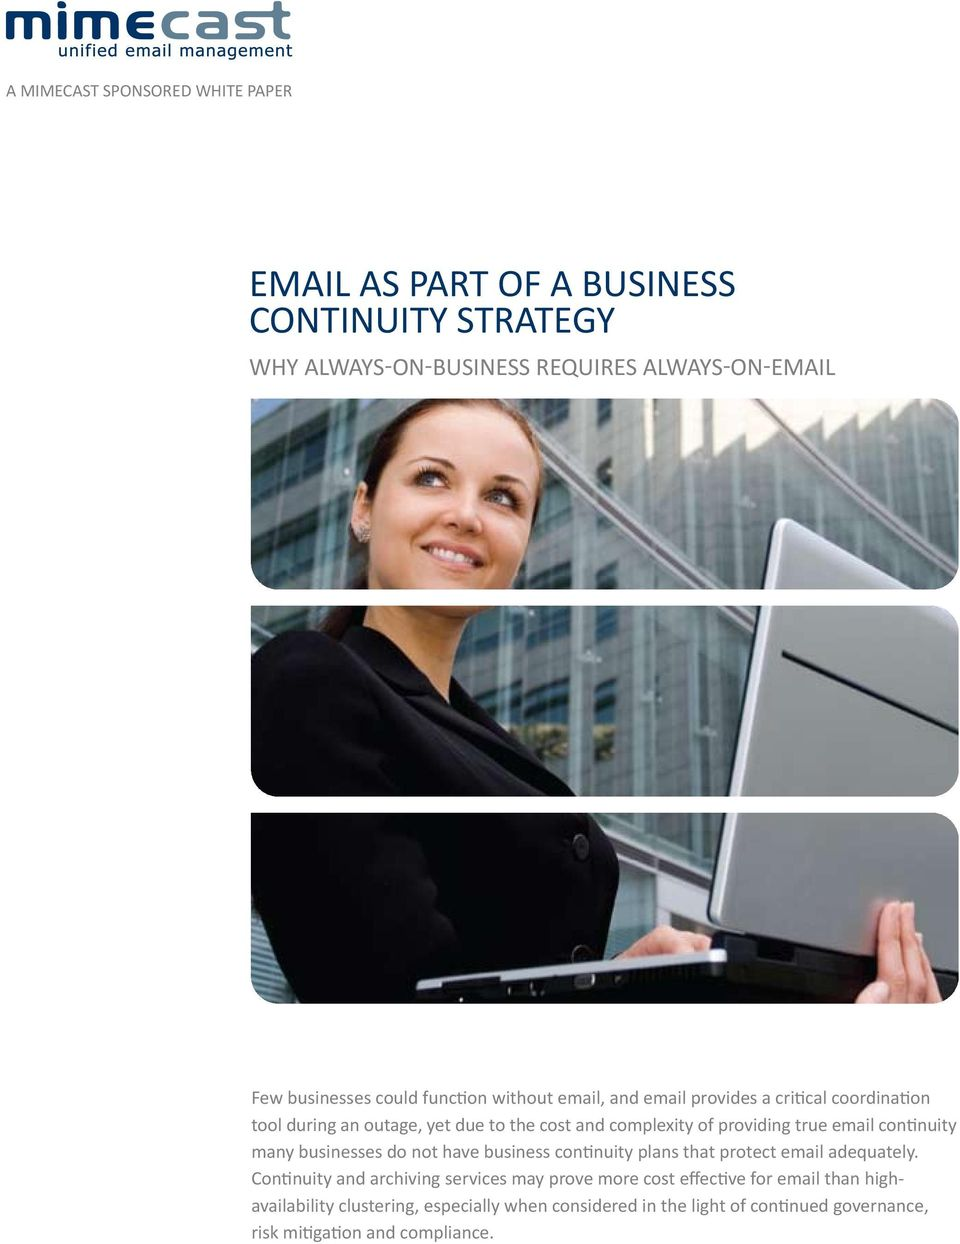 continuity many businesses do not have business continuity plans that protect email adequately.